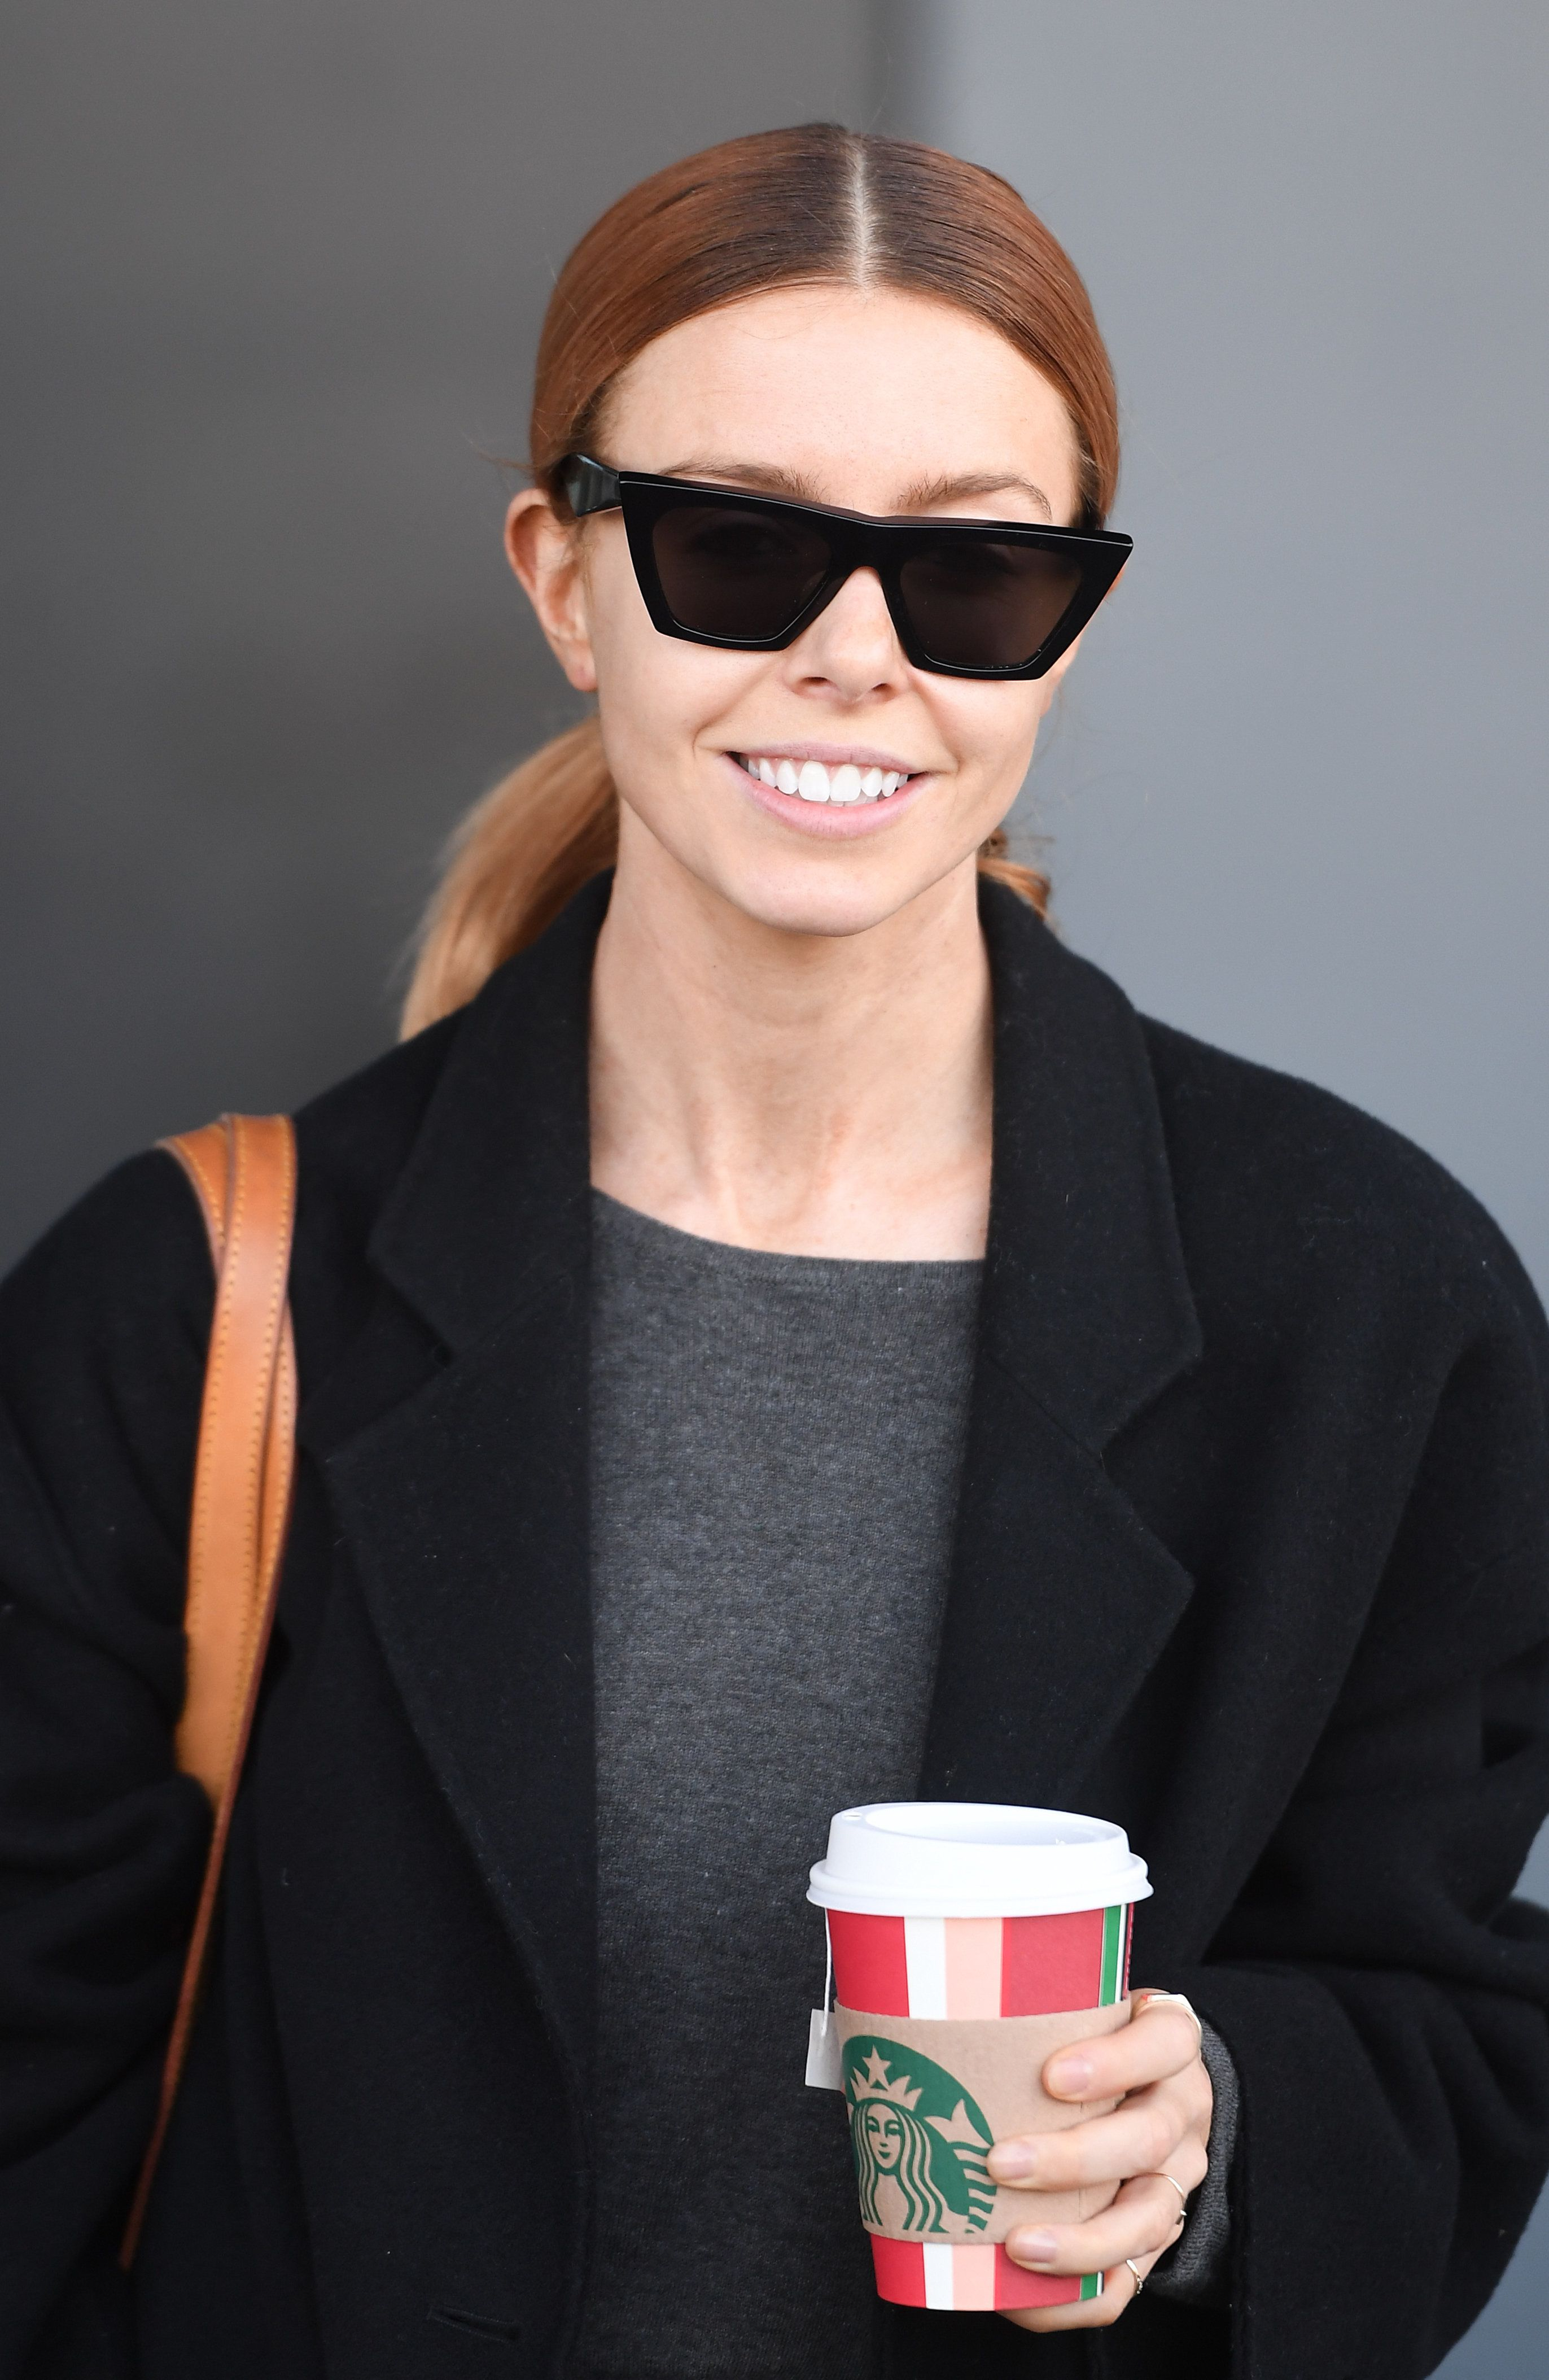 Stacey Dooley Hits Back At Claims She 'Sold Out' By Hosting New Reality Show About